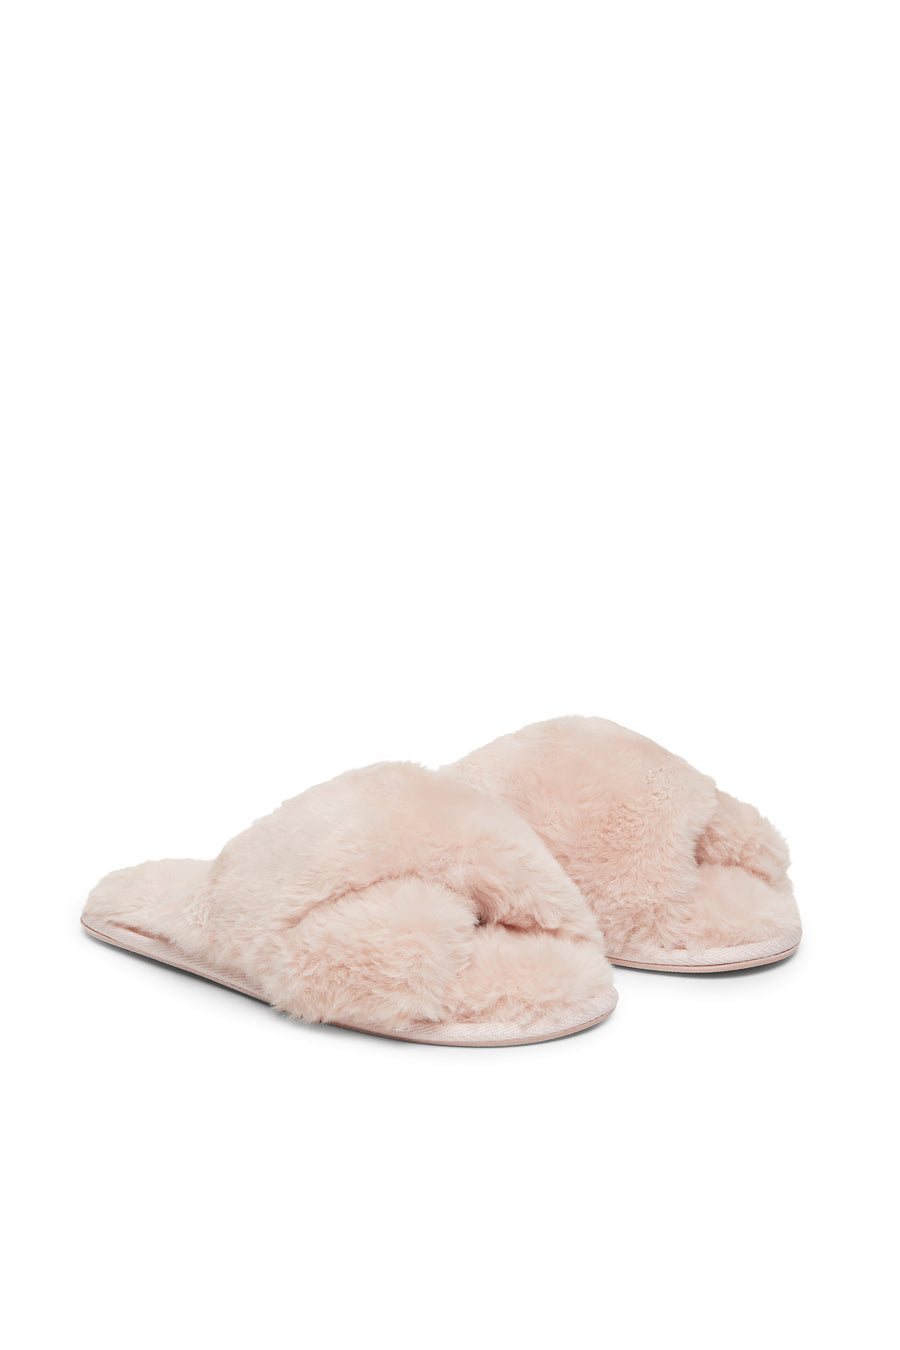 FUR FREE FUR SLIPPERS {Rose Dust}